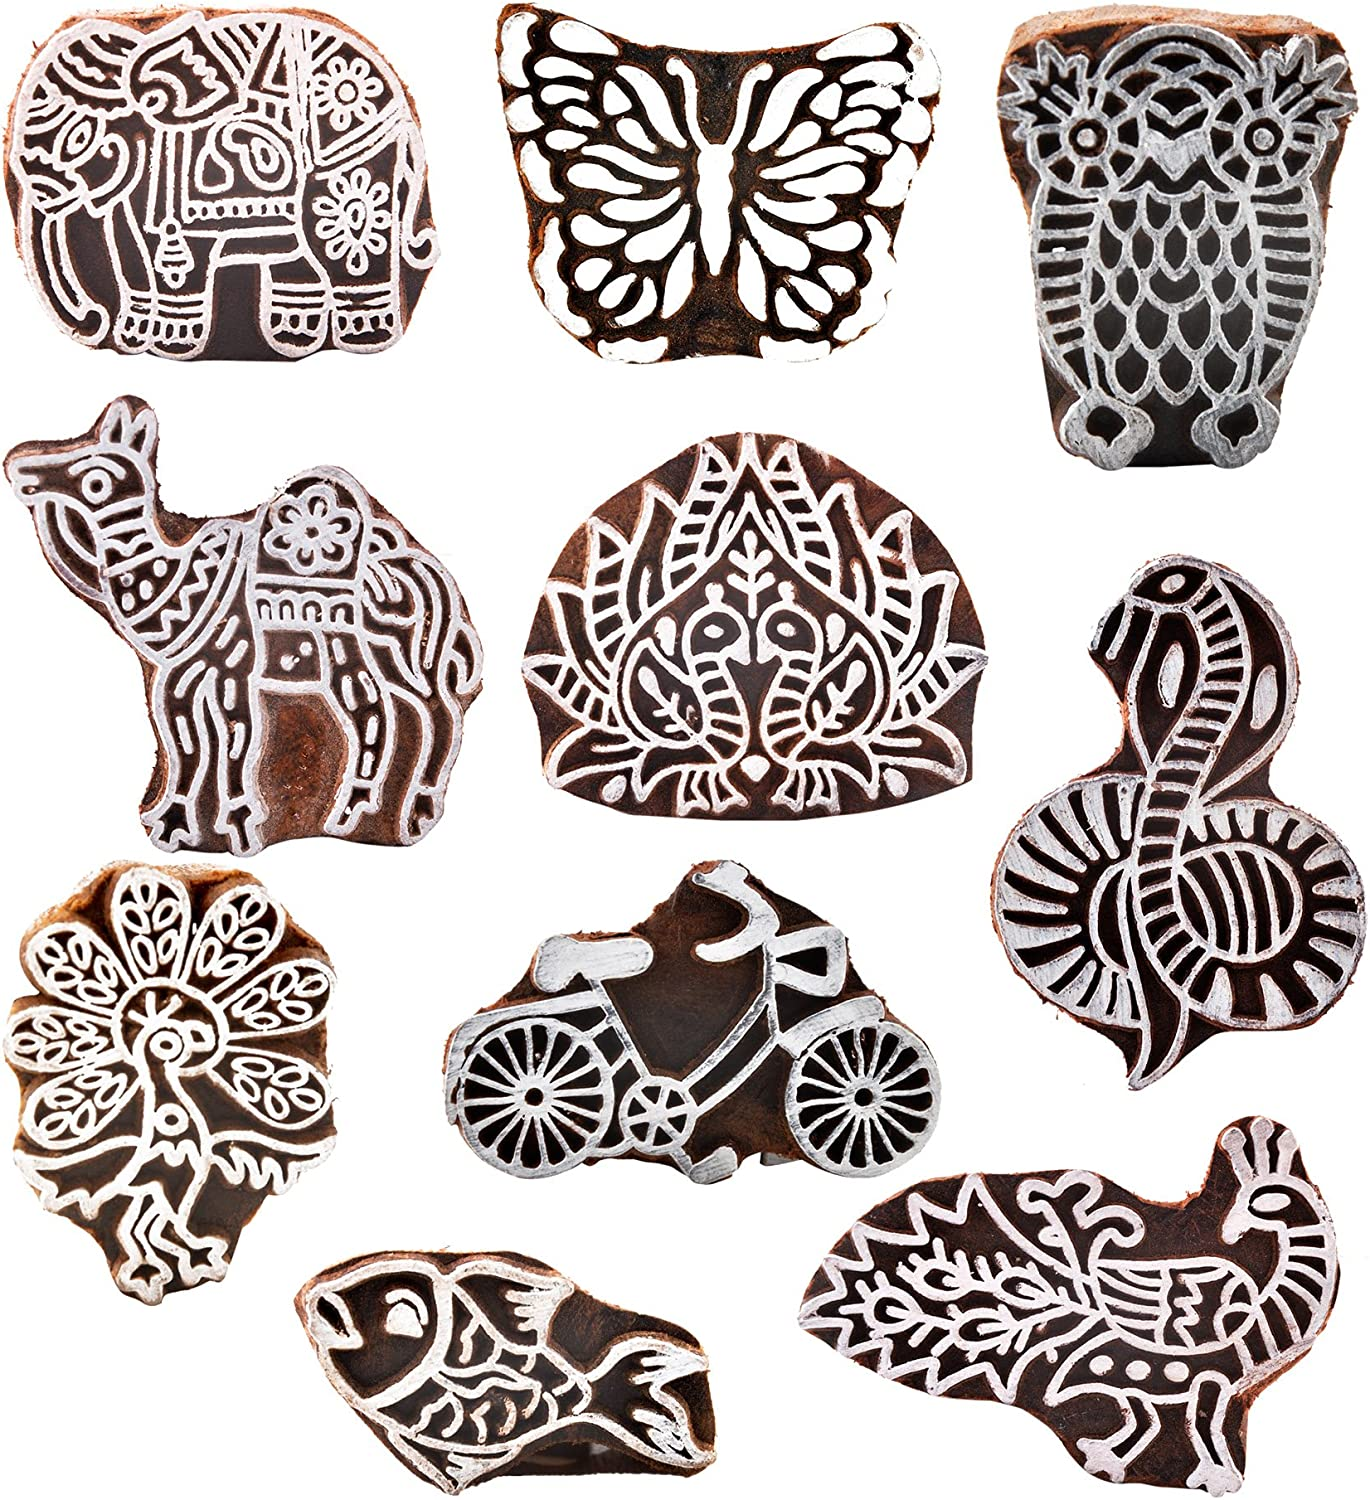 Hashcart Baren for Block Printing Stamps//Wooden Stamping Block//Handcarved Designer Craft Printing Pattern for Saree Border,Henna//Textile Printing,Scrapbooking,Pottery Crafts /& Wall Painting,Set of 10